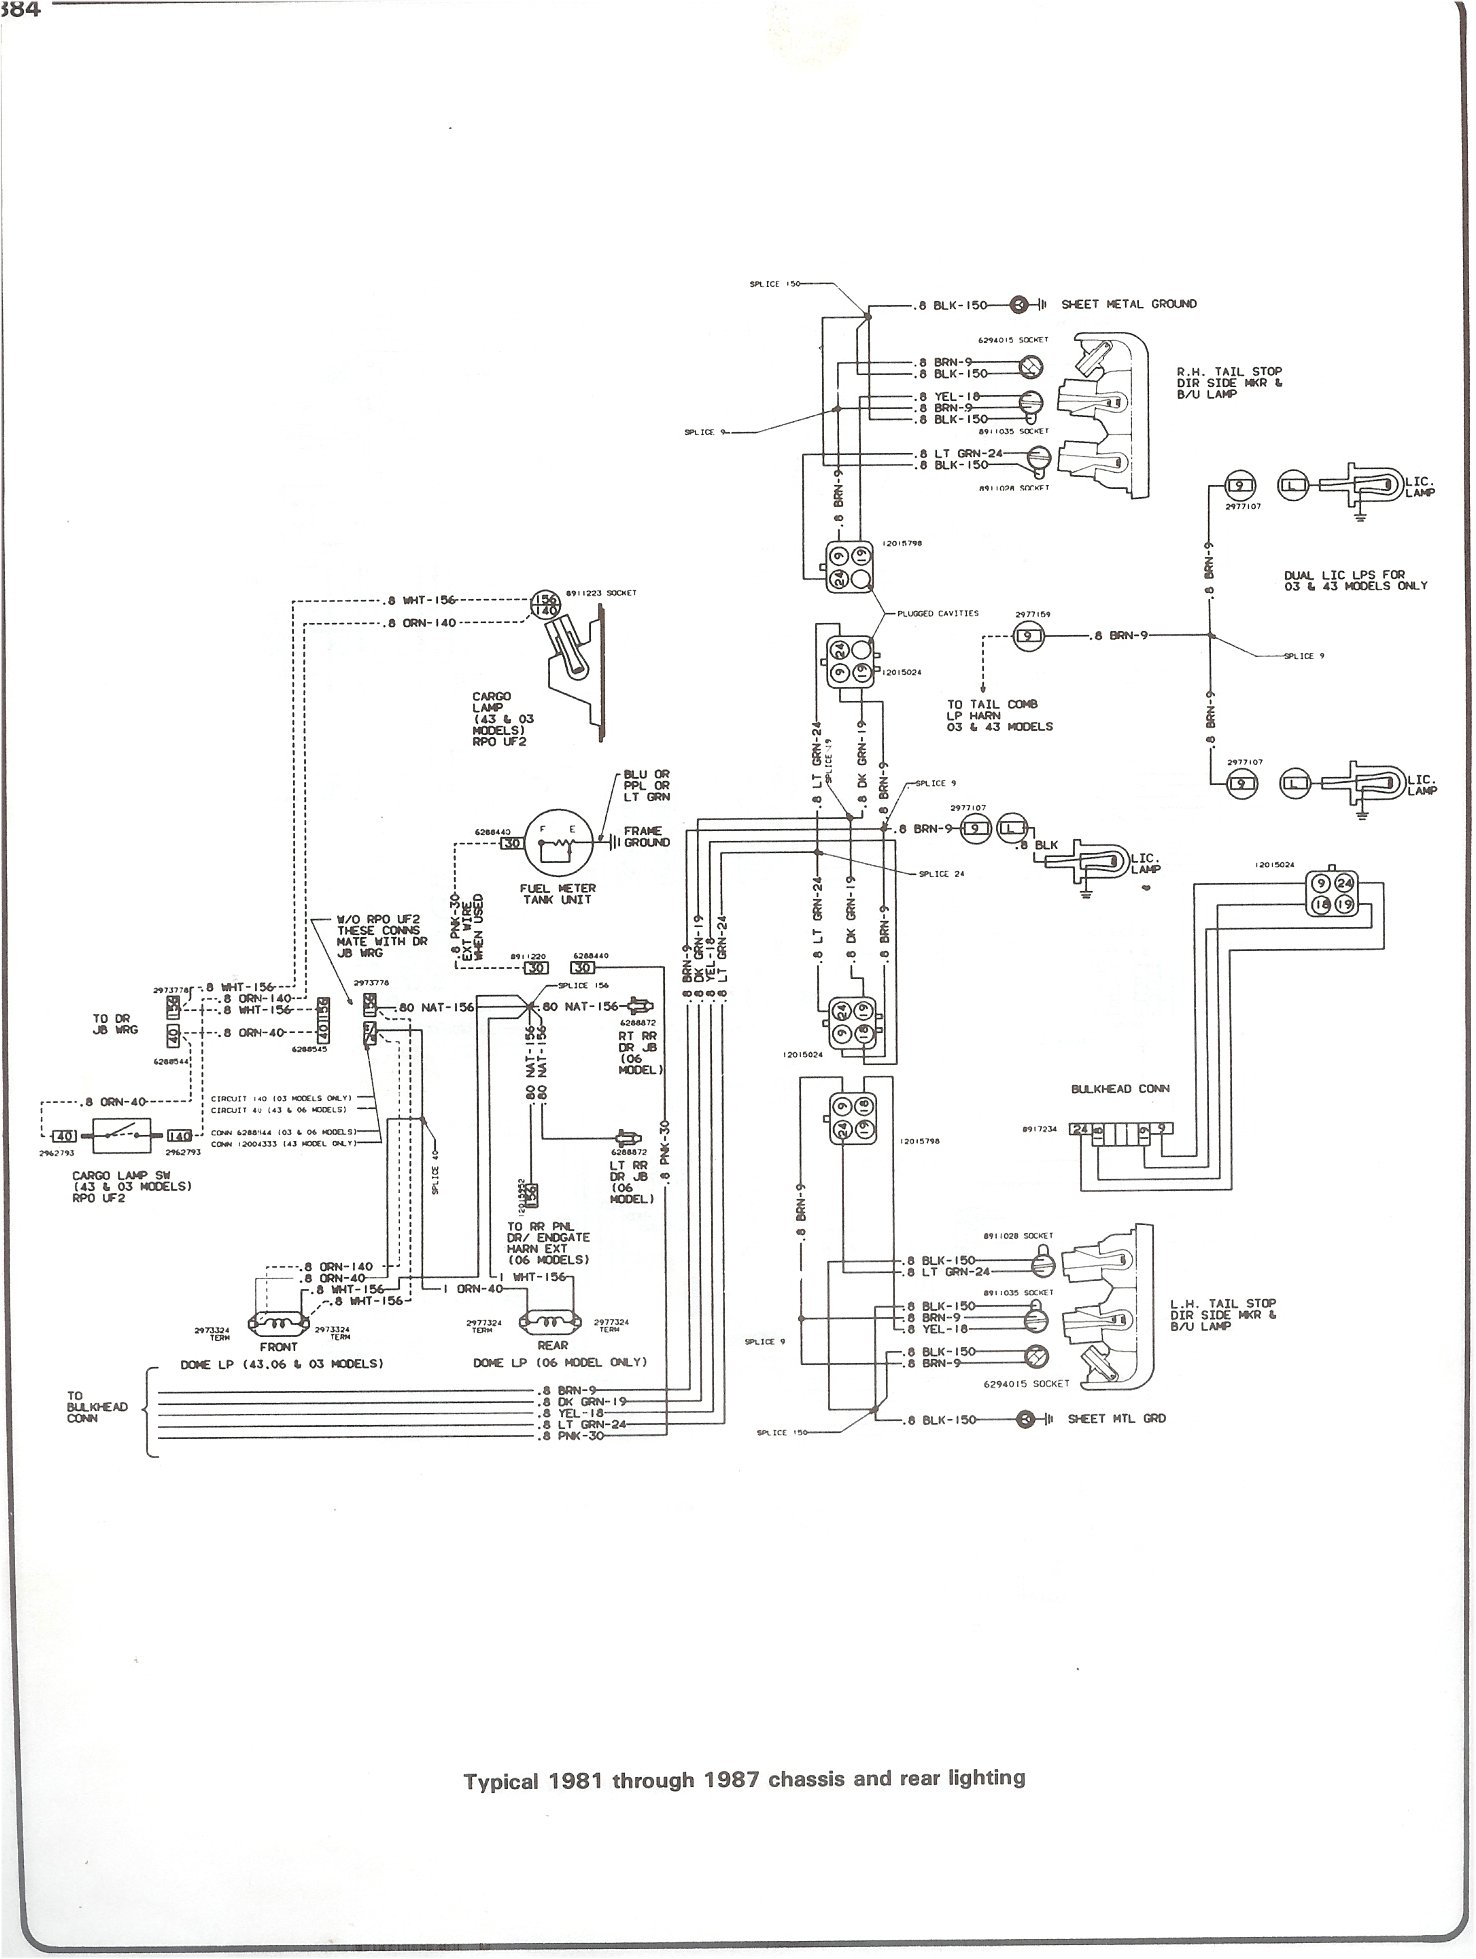 1975 Chevy P30 Wiring Diagram Books Of Fender Marauder Complete 73 87 Diagrams Rh Forum 87chevytrucks Com